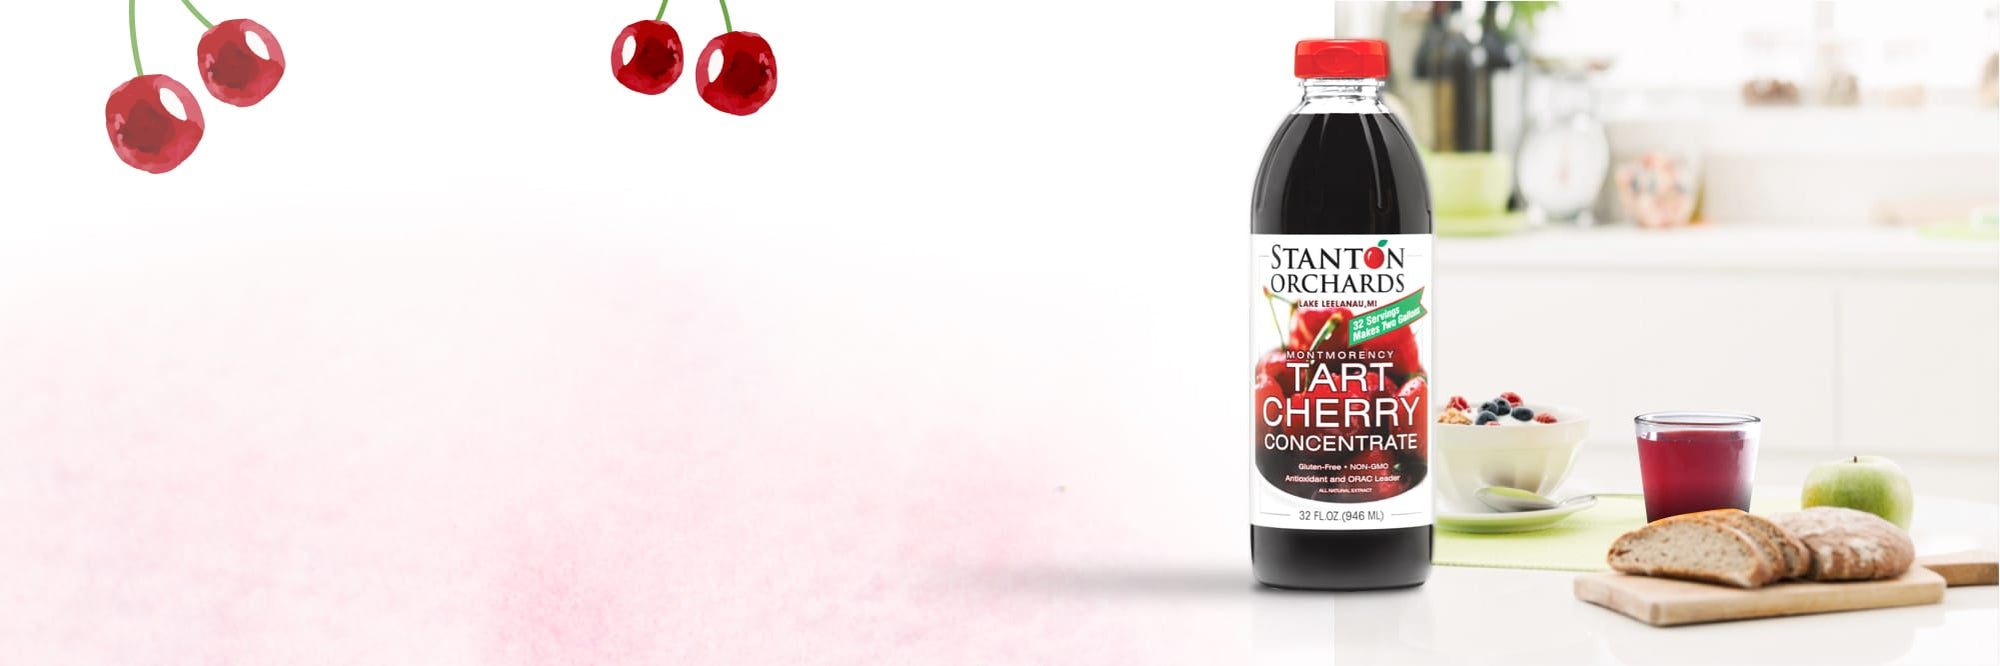 Stanton Orchards' tart cherry concentrate removes free radicals inside the body to help deter cancer